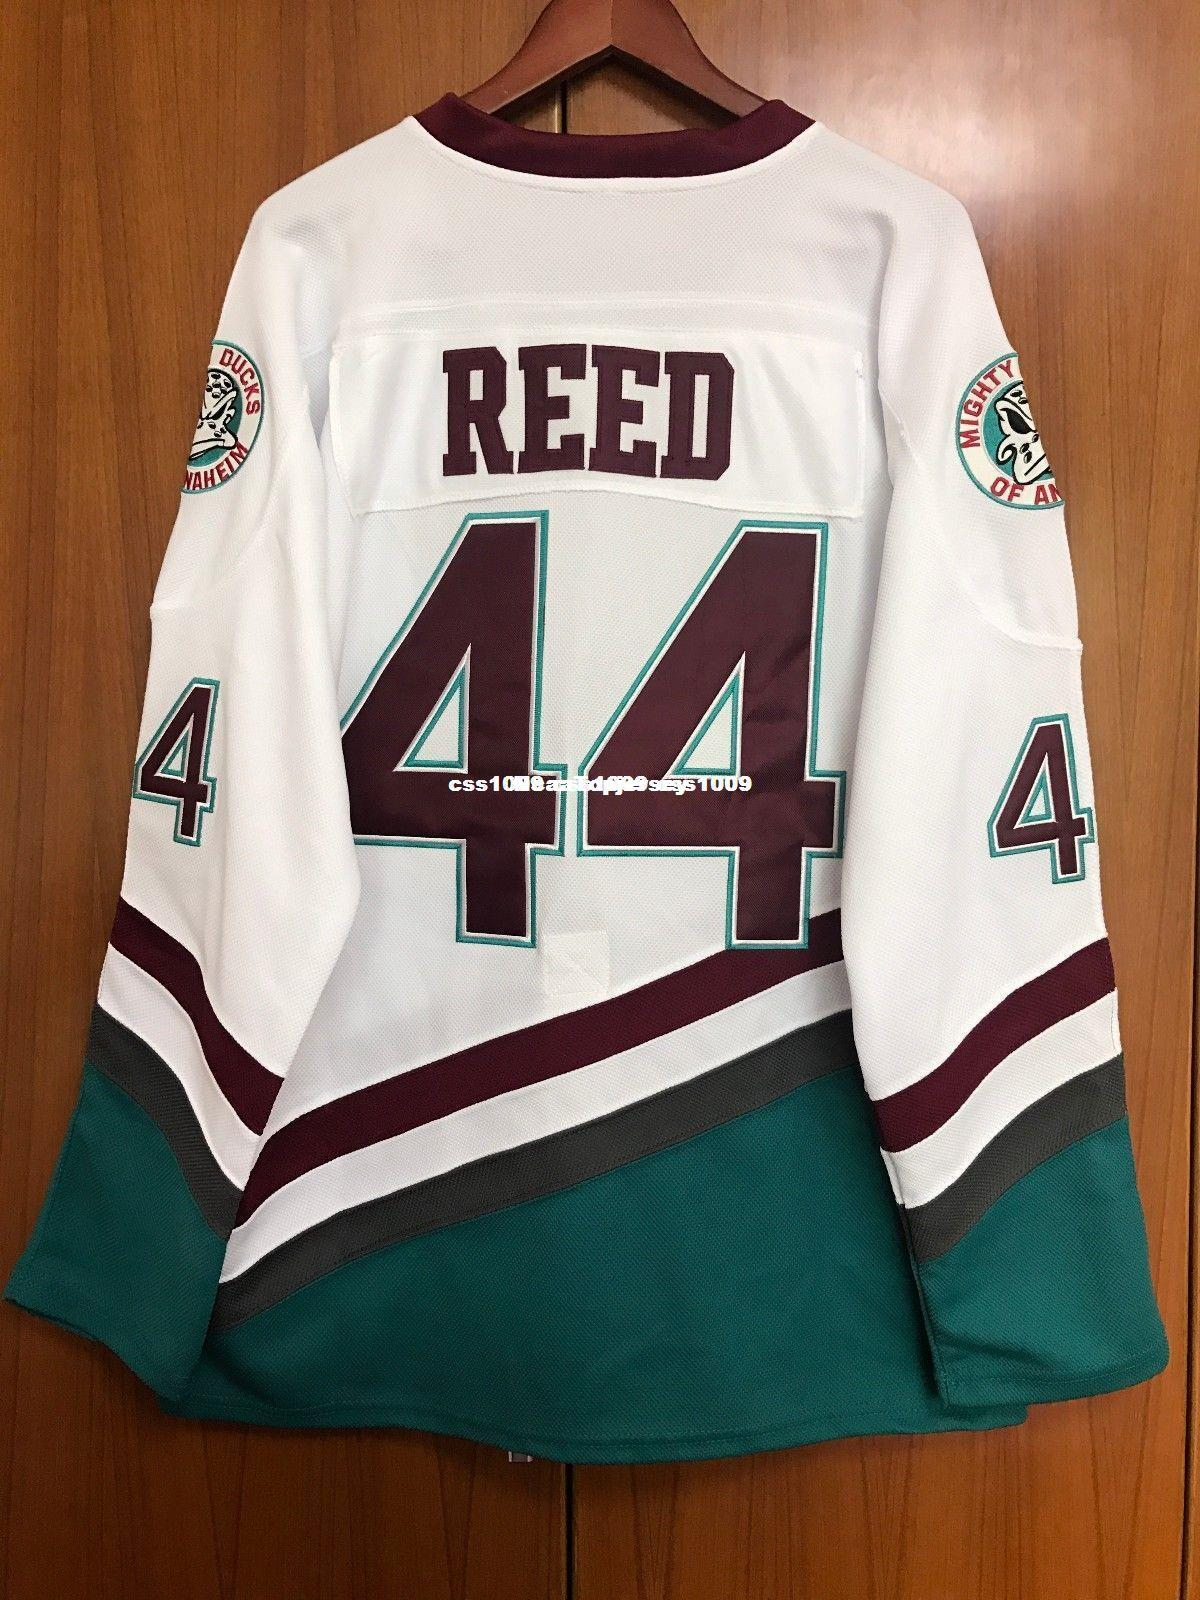 2019 Cheap Custom Mighty Ducks Movie Jersey  44 Fulton Reed Hockey Jersey  White Stitched Customize Any Number Name MEN WOMEN YOUTH XS 6XL From  Ncaatopjersey ... 32148c5b242